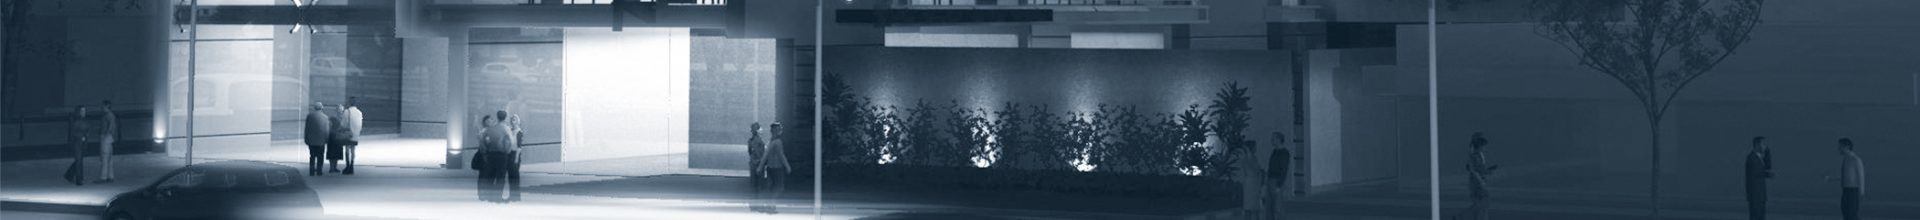 cropped-Duotone_Header-Image.jpg